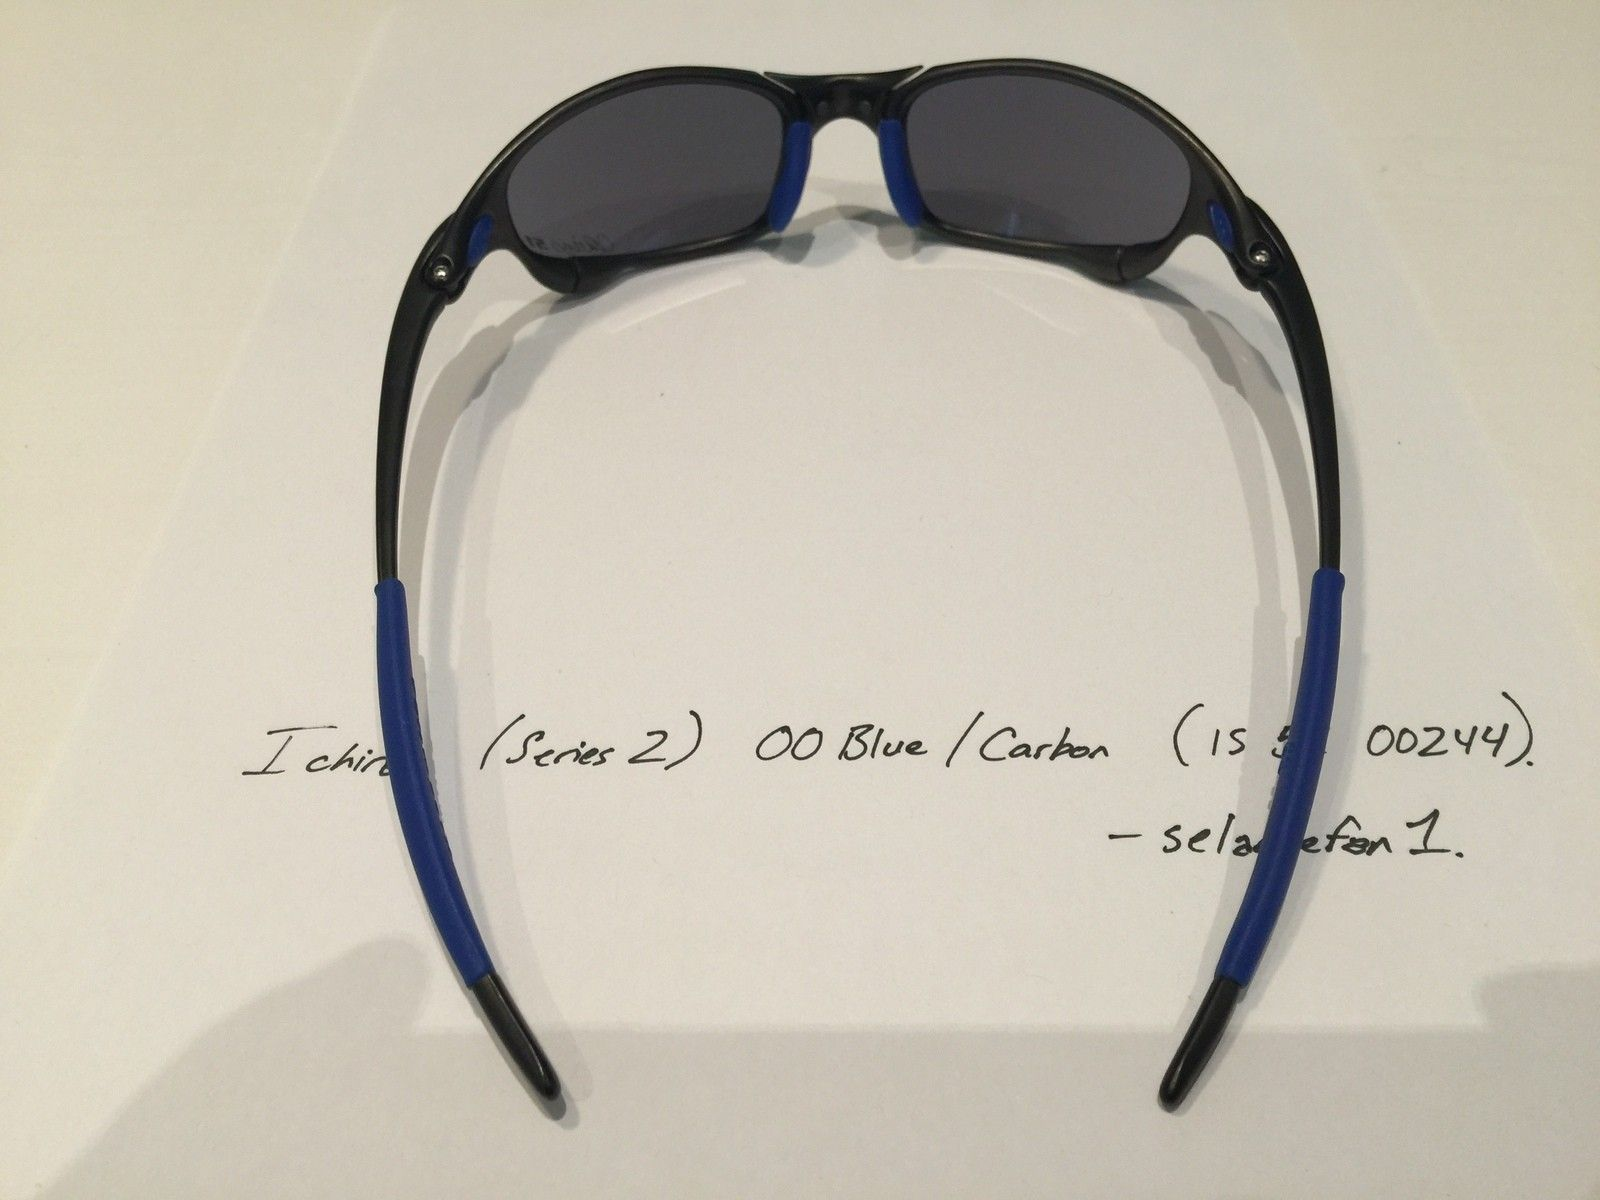 Ichiro OO Blue / Carbon Juliets (with Serial and Box) - IMG_3831.JPG